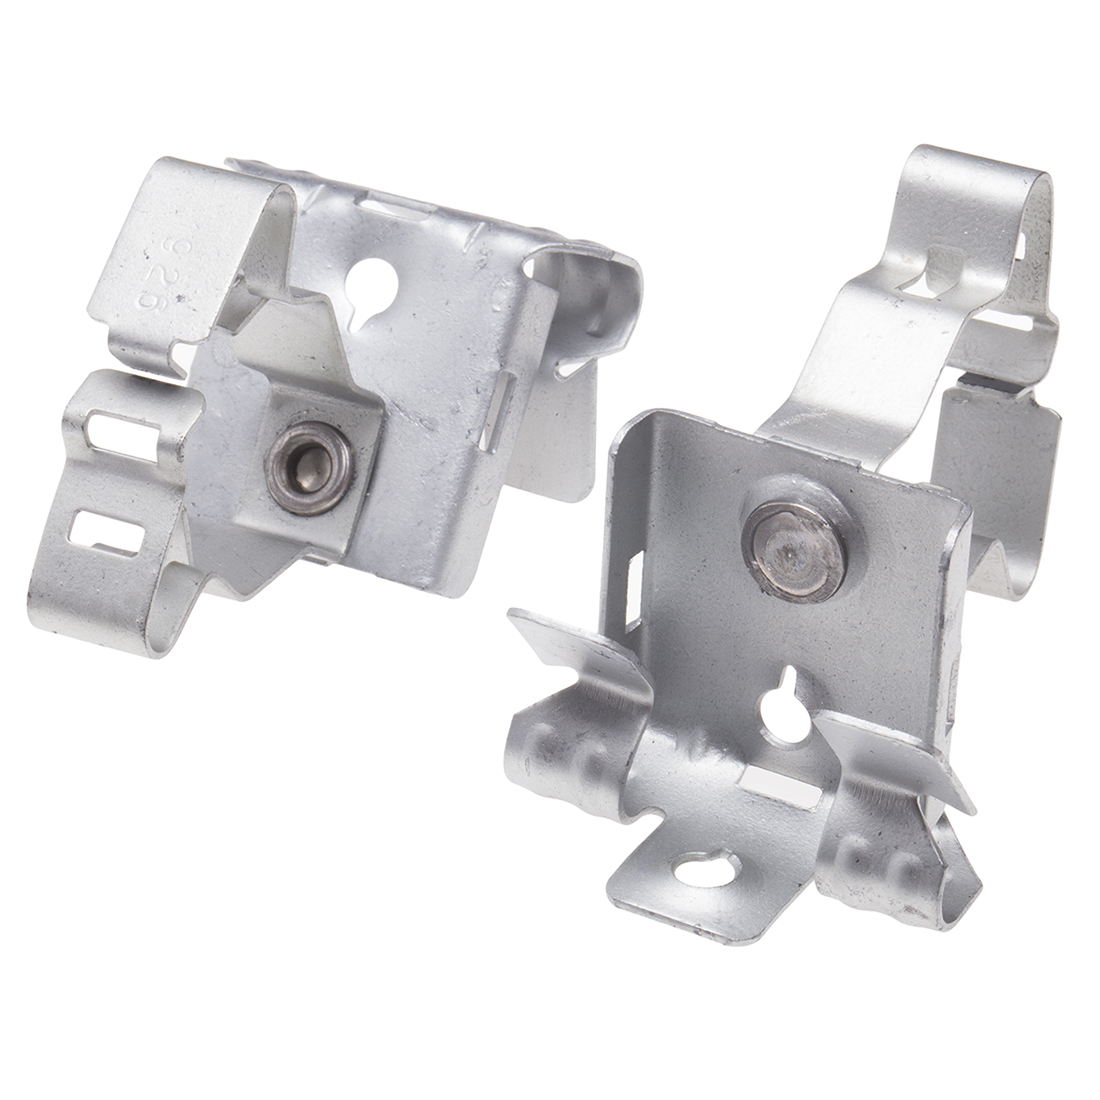 RS PRO Steel Girder Conduit Clamp, 3 → 8 mm - Pack of 25